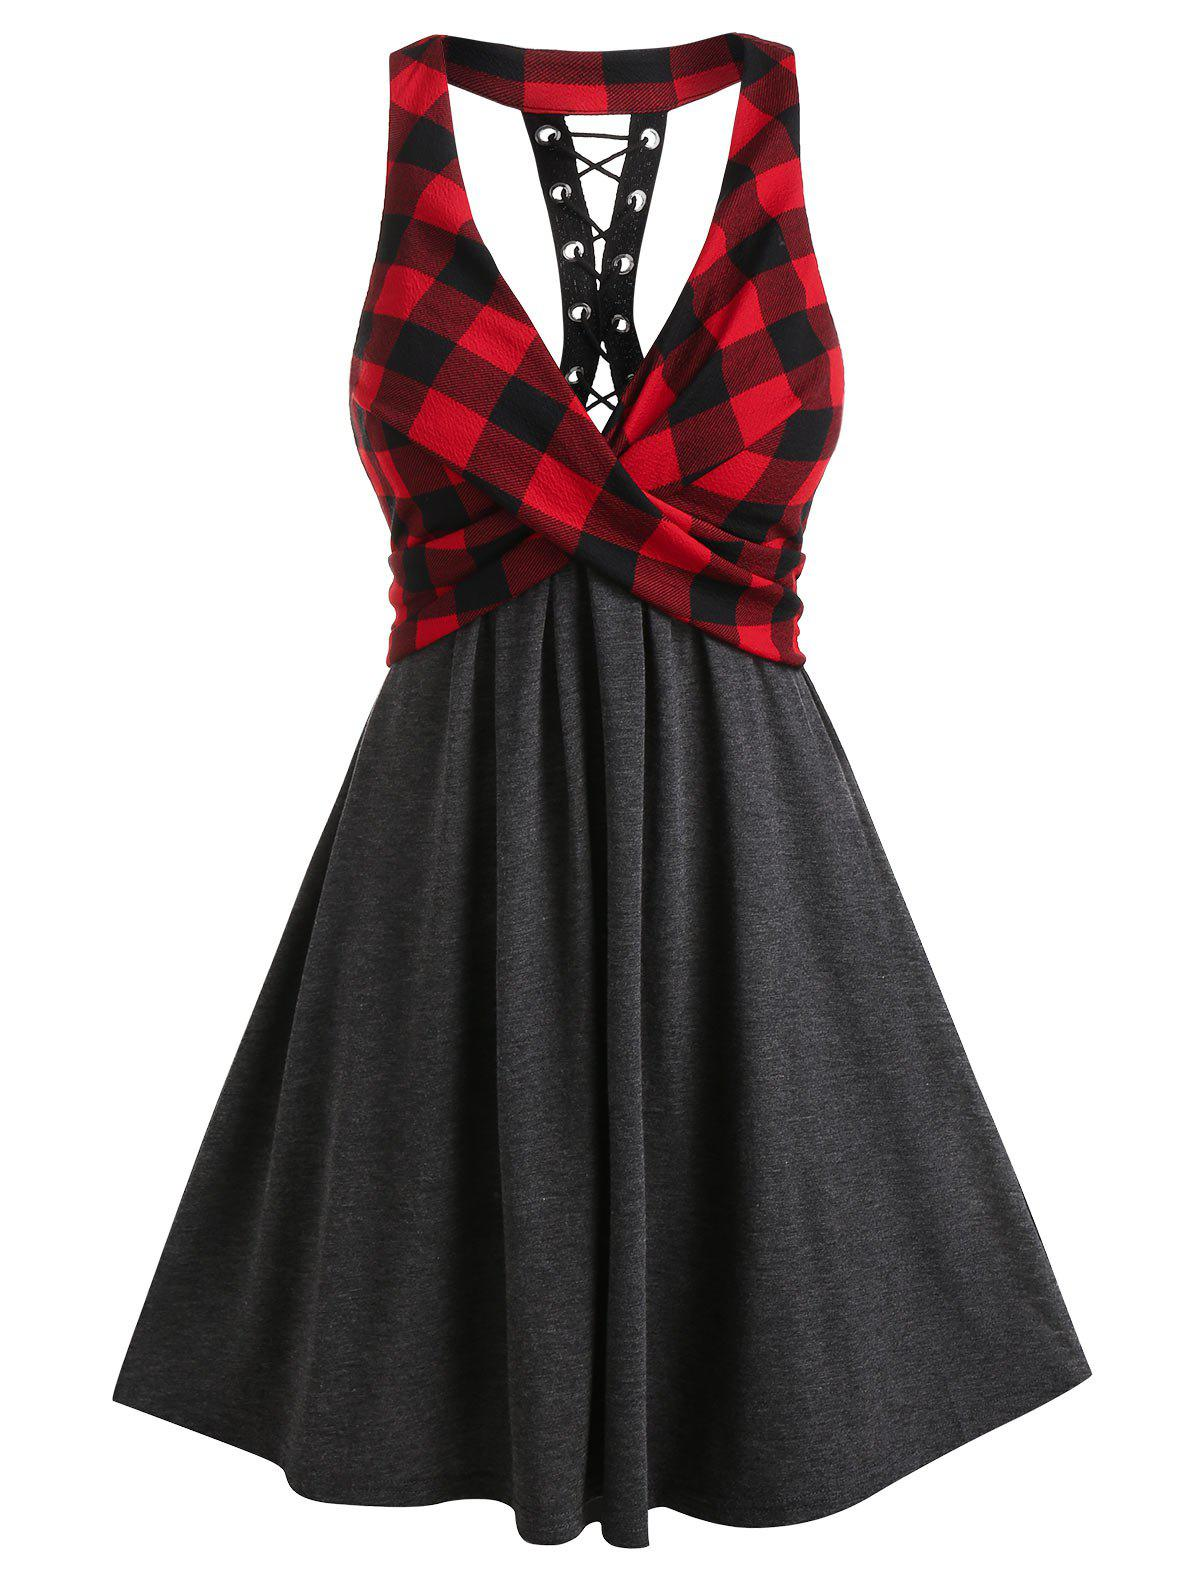 Plaid Print Lace Up Back High Waist Dress - multicolor A XL